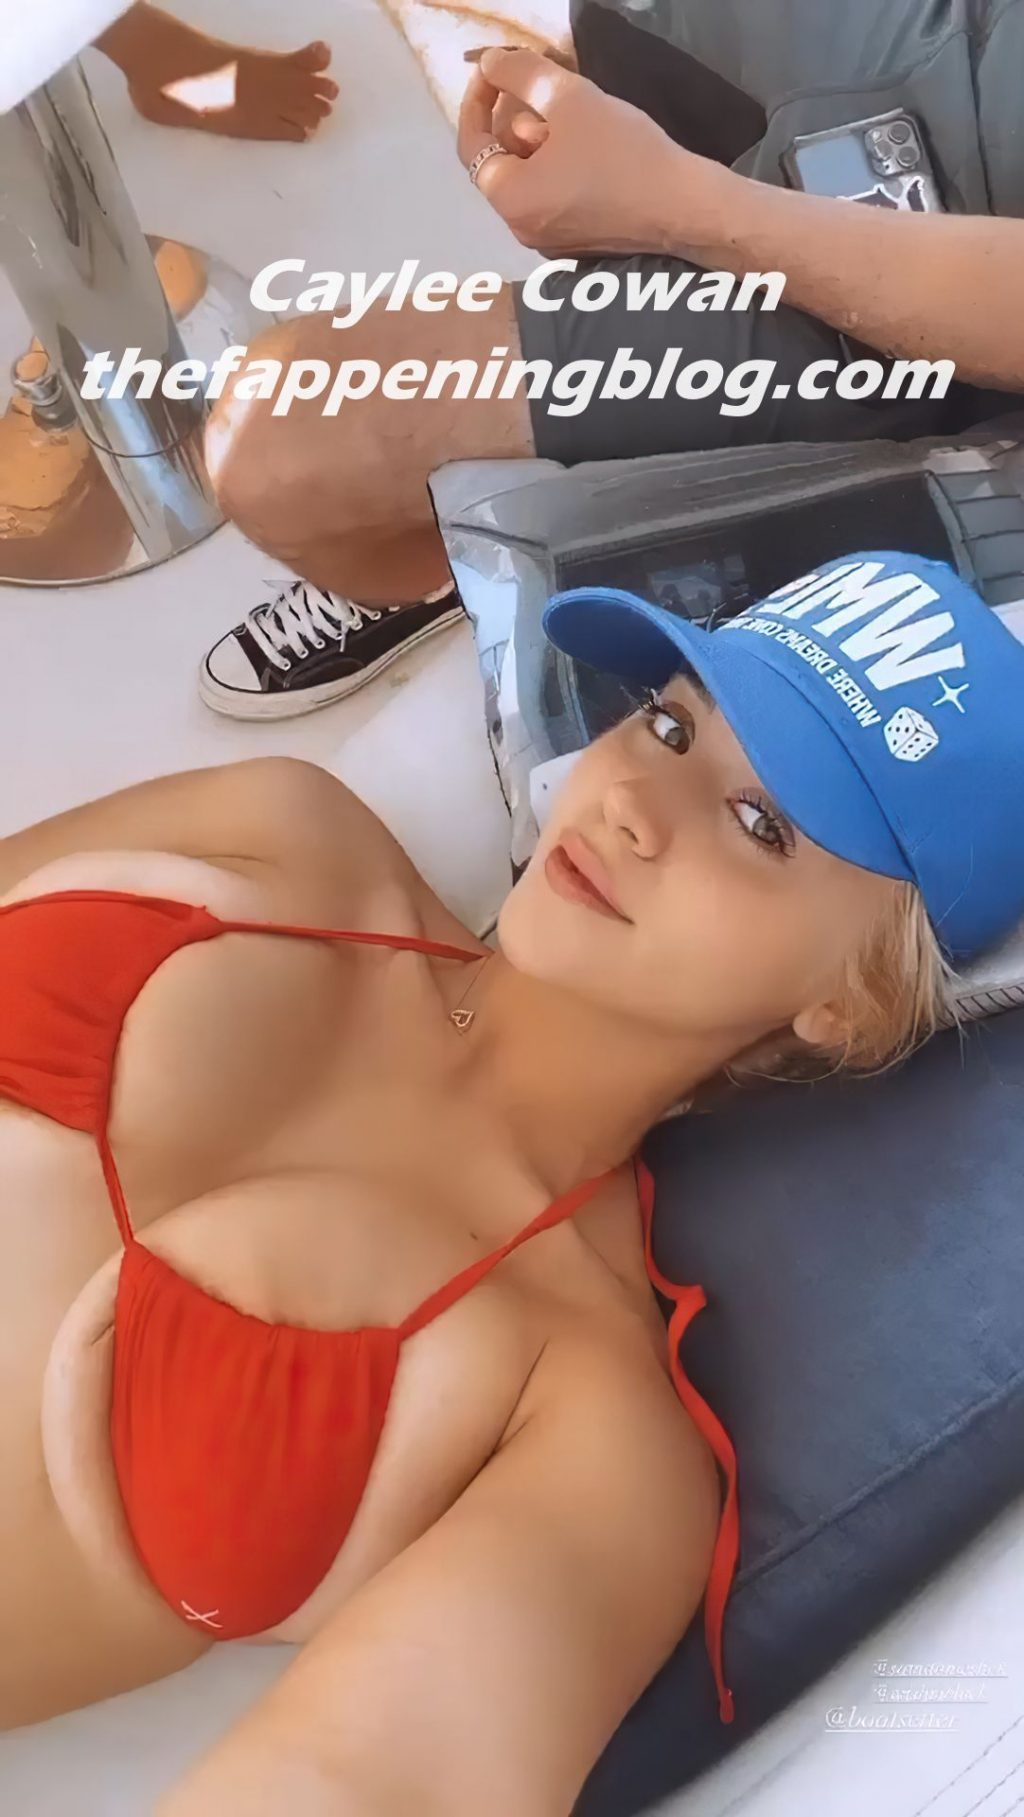 Caylee Cowan Shows Off Her Huge Boobs on a Boat (8 Photos + Video)